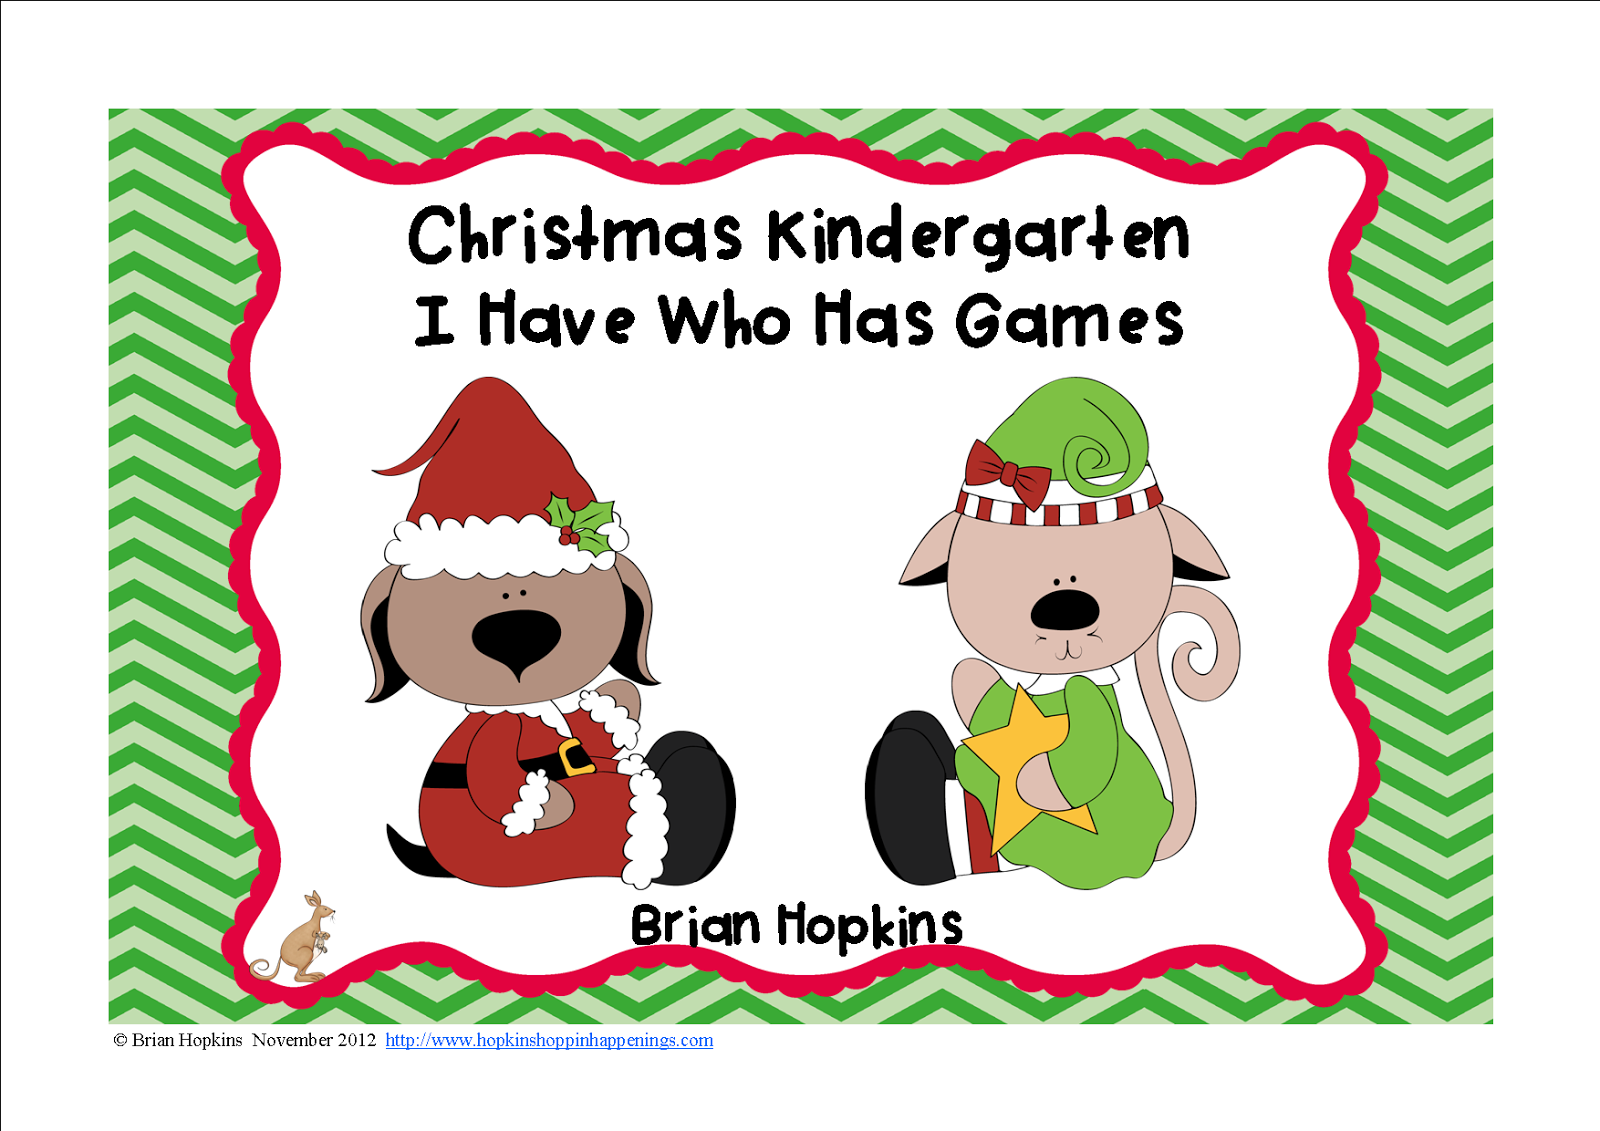 Christmas Kindergarten I Have Who Has Games